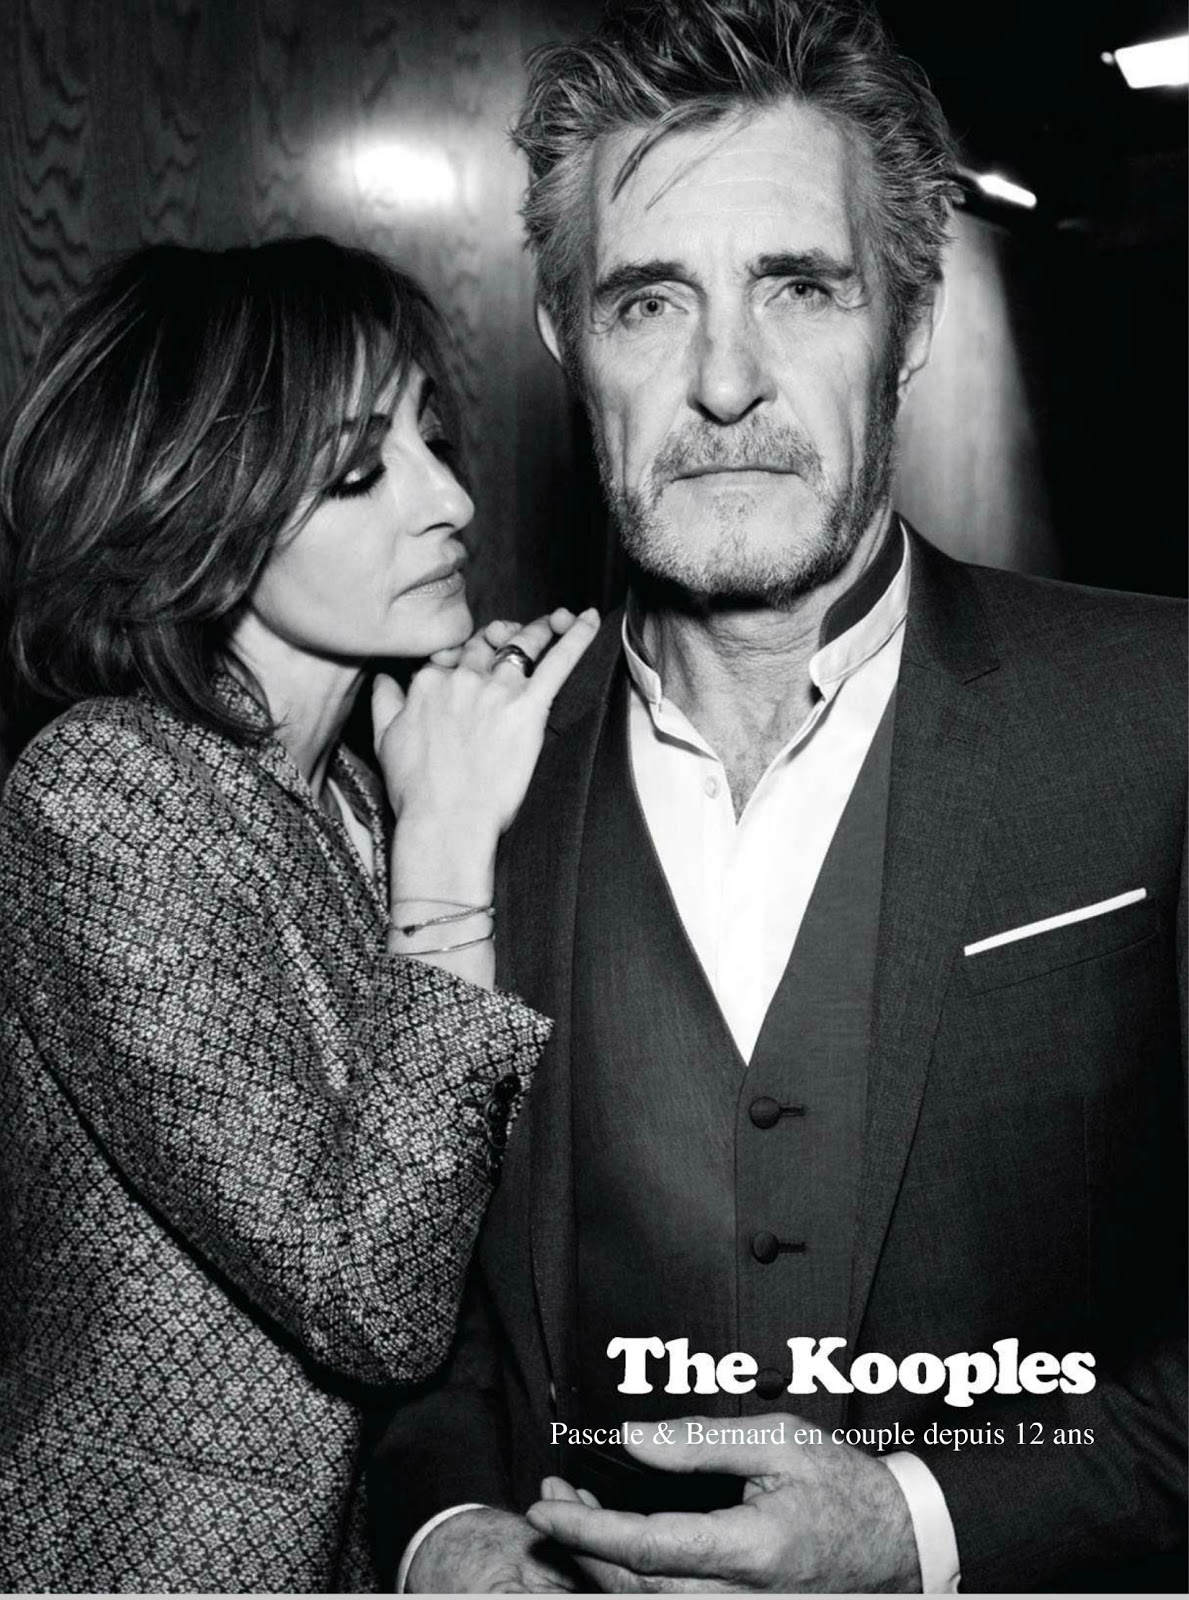 1253bdae3d9 The Essentialist - Fashion Advertising Updated Daily: The Kooples Ad ...